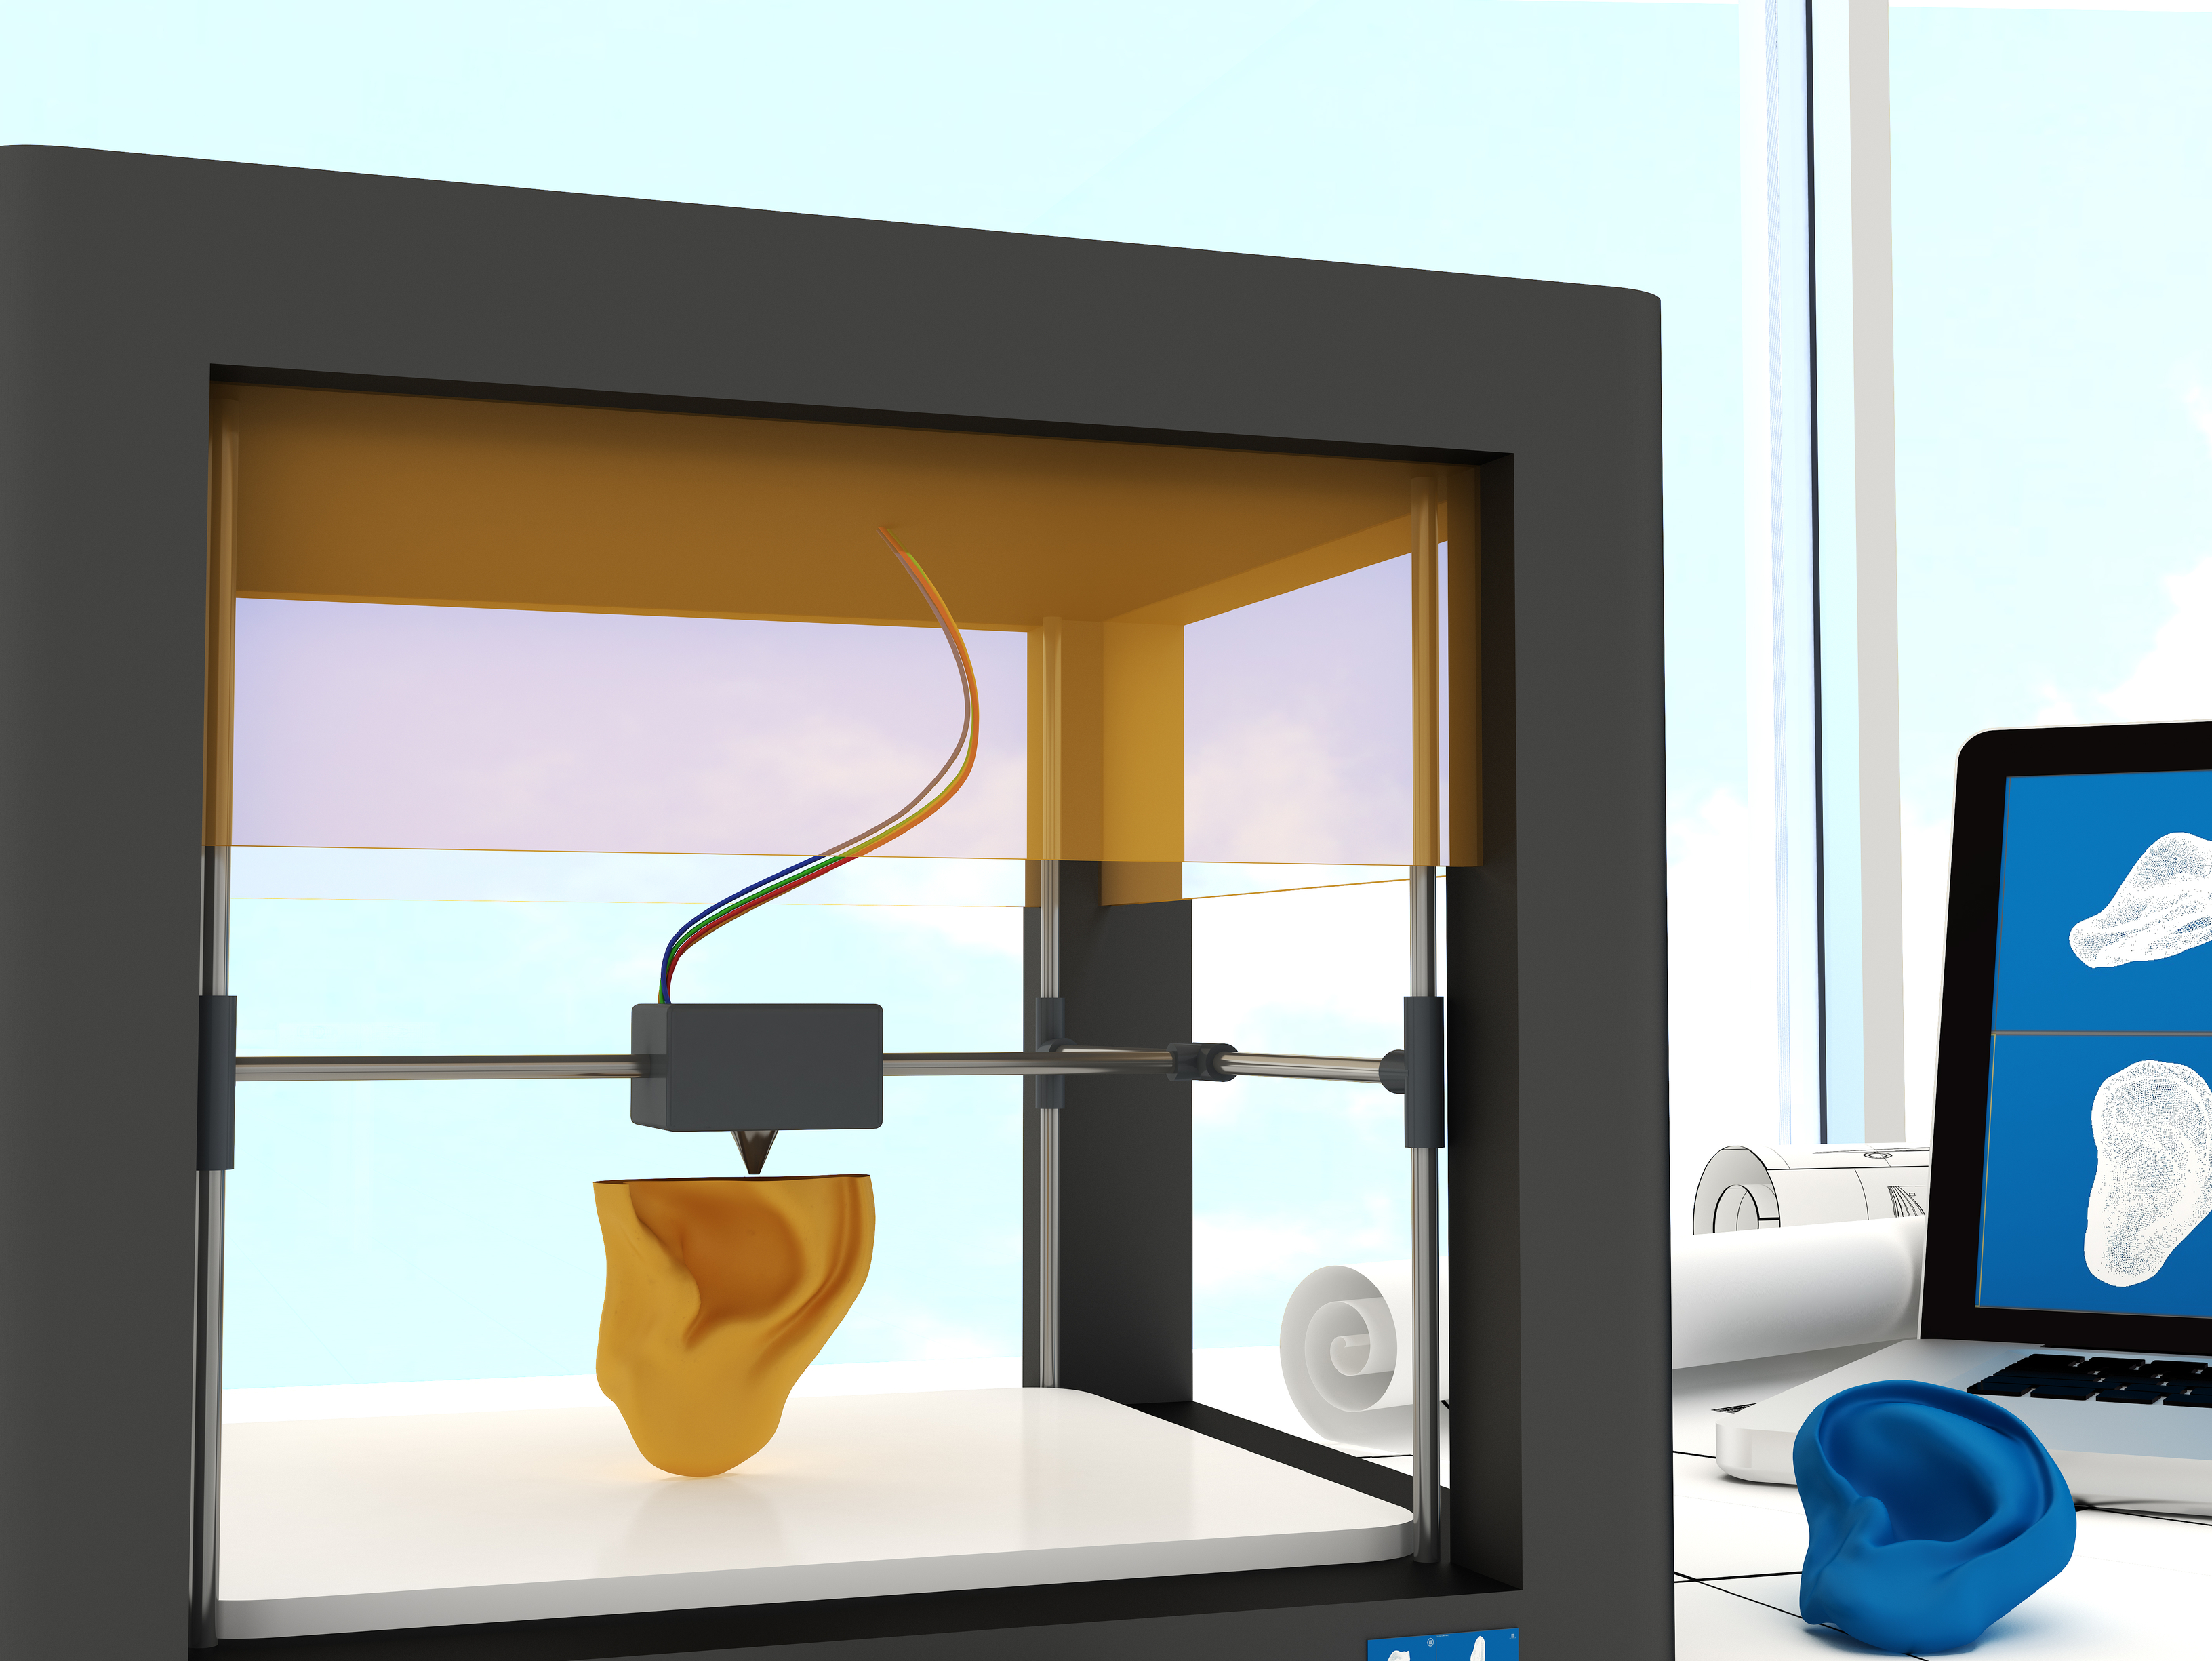 Tissues and Organs on Demand? How 3D Bioprinters May Revolutionize Medicine